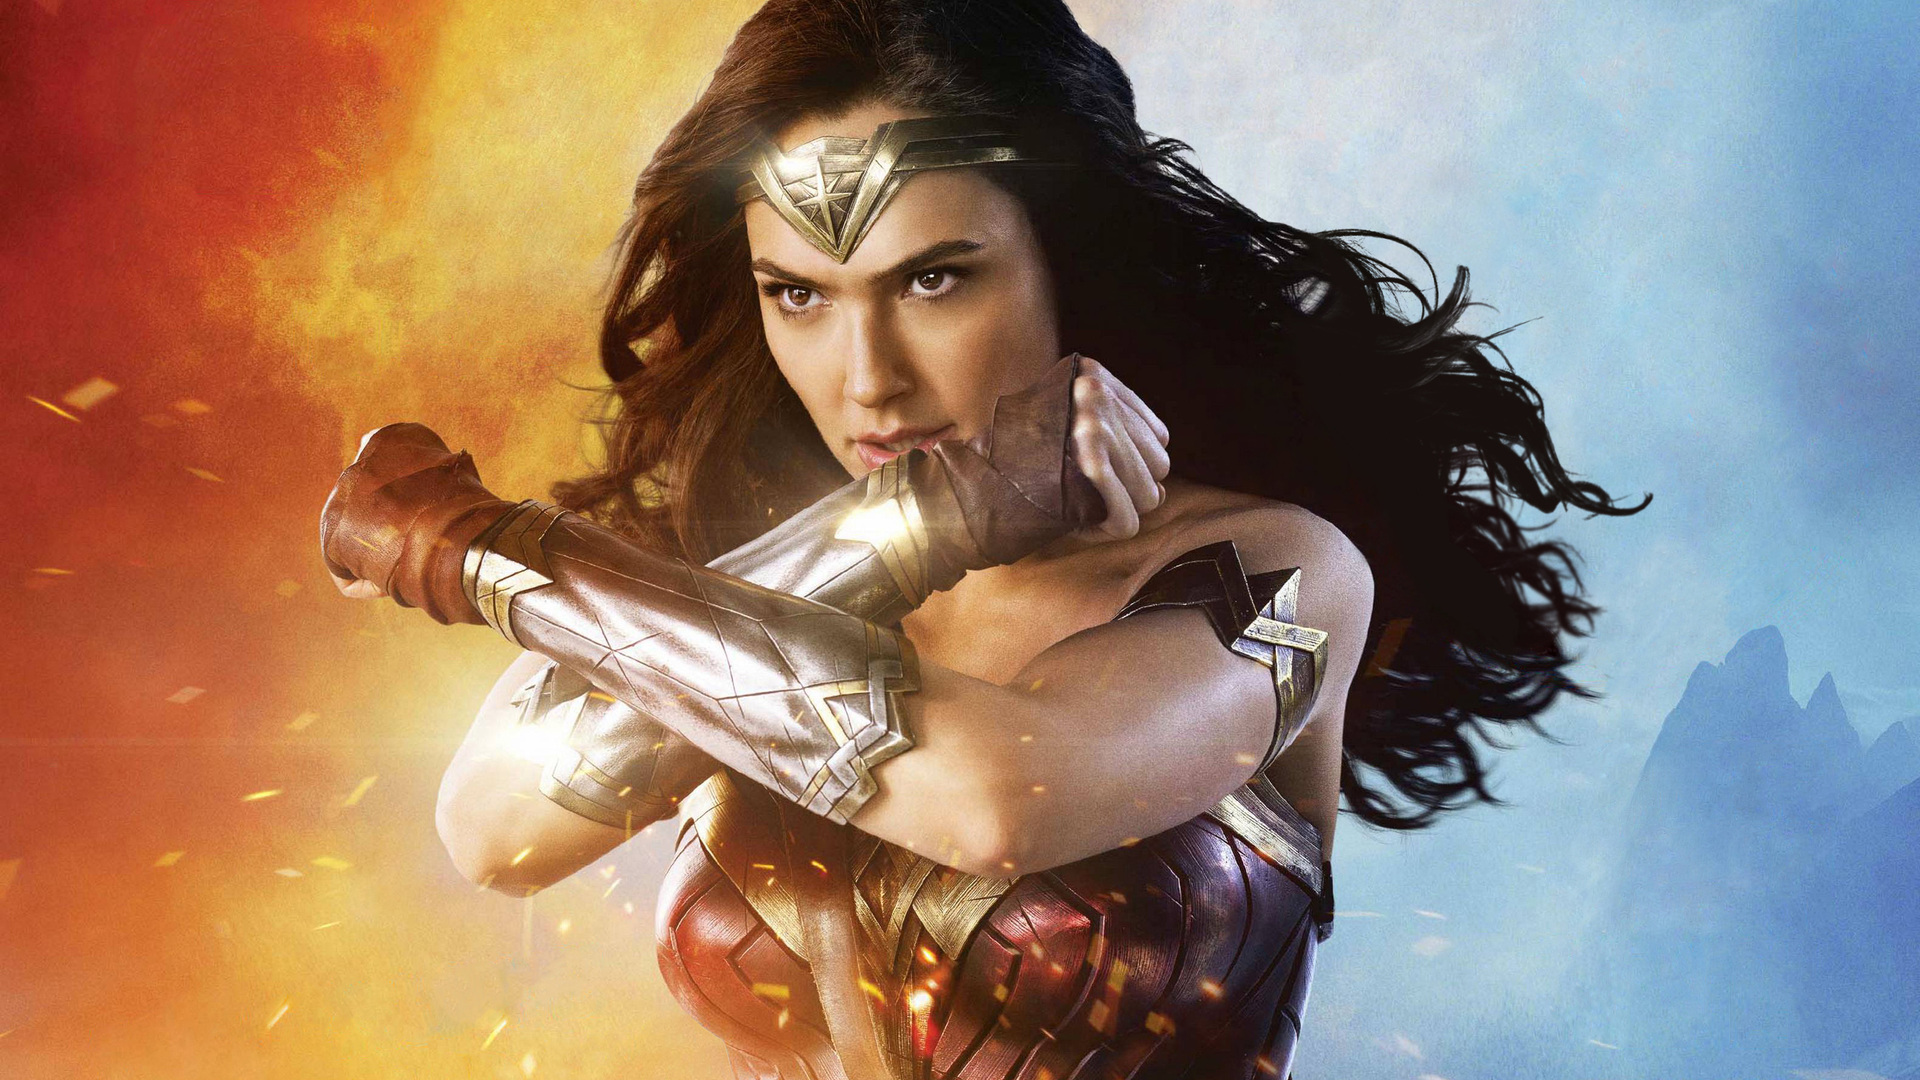 1920x1080 Diana Prince Wonder Woman Laptop Full HD 1080P ... Hd Wallpapers 1920x1080 Women